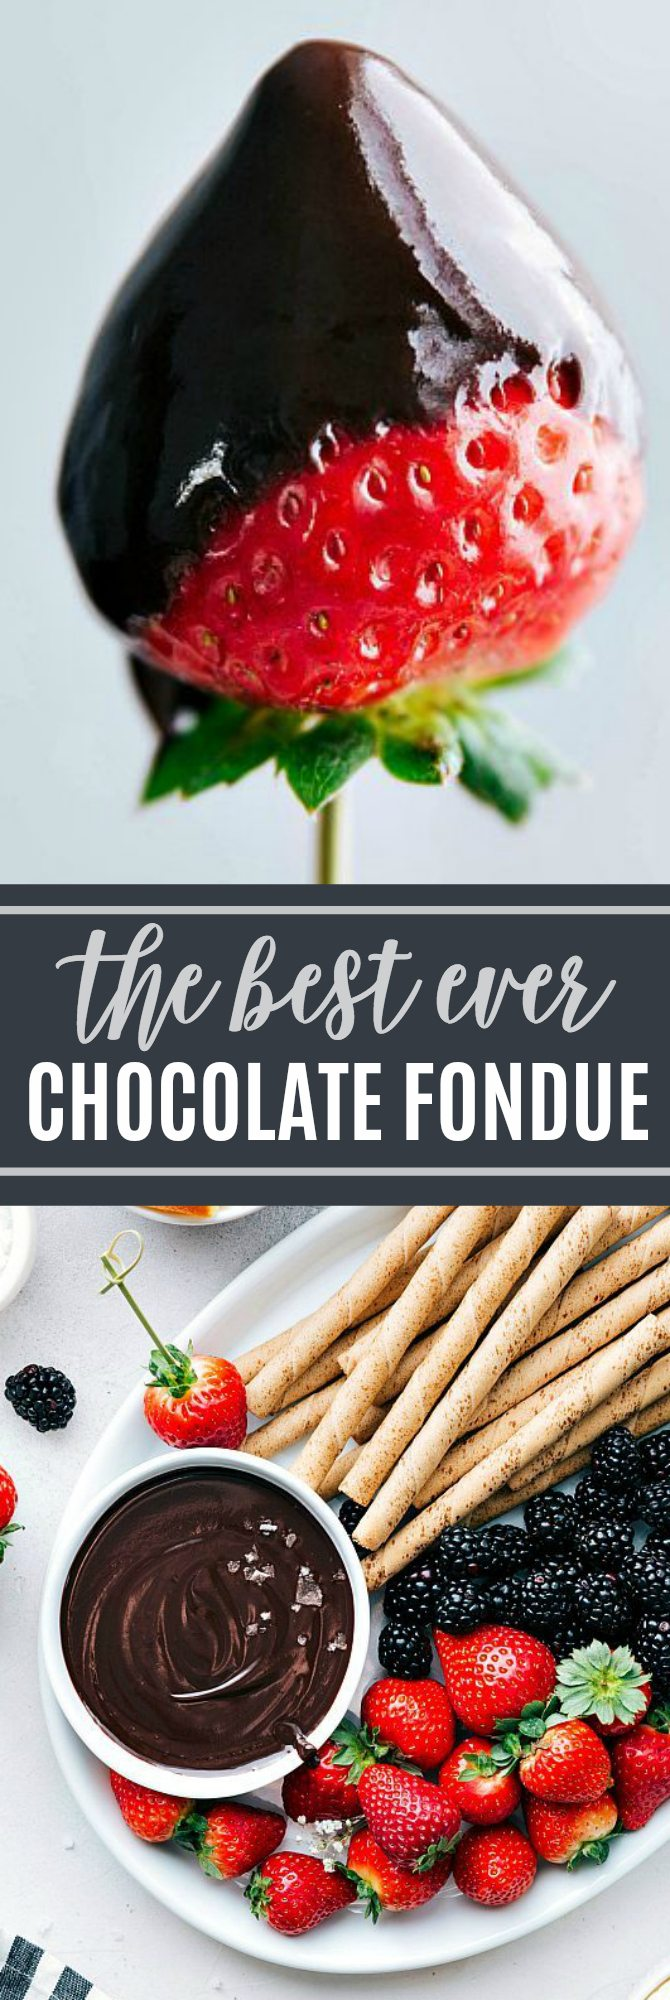 The ultimate BEST EVER Chocolate Foundue! A super easy and quick ONE DISH dessert that is completely kid friendly! via chelseasmessyapron.com #fondue #chocolate #easy #quick #dessert #treat #party #event